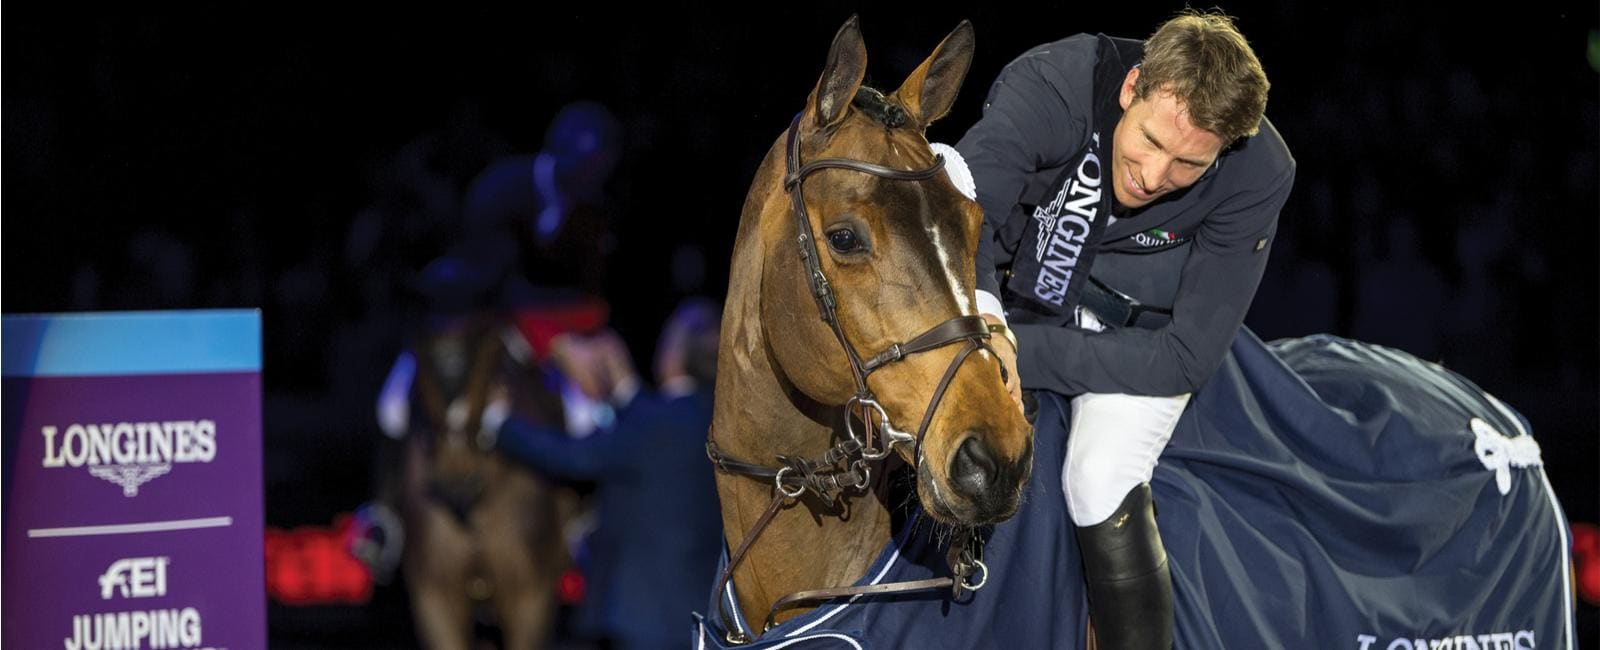 Longines FEI Jumping World Cup Western European League - Amsterdam; Jumping; 2019